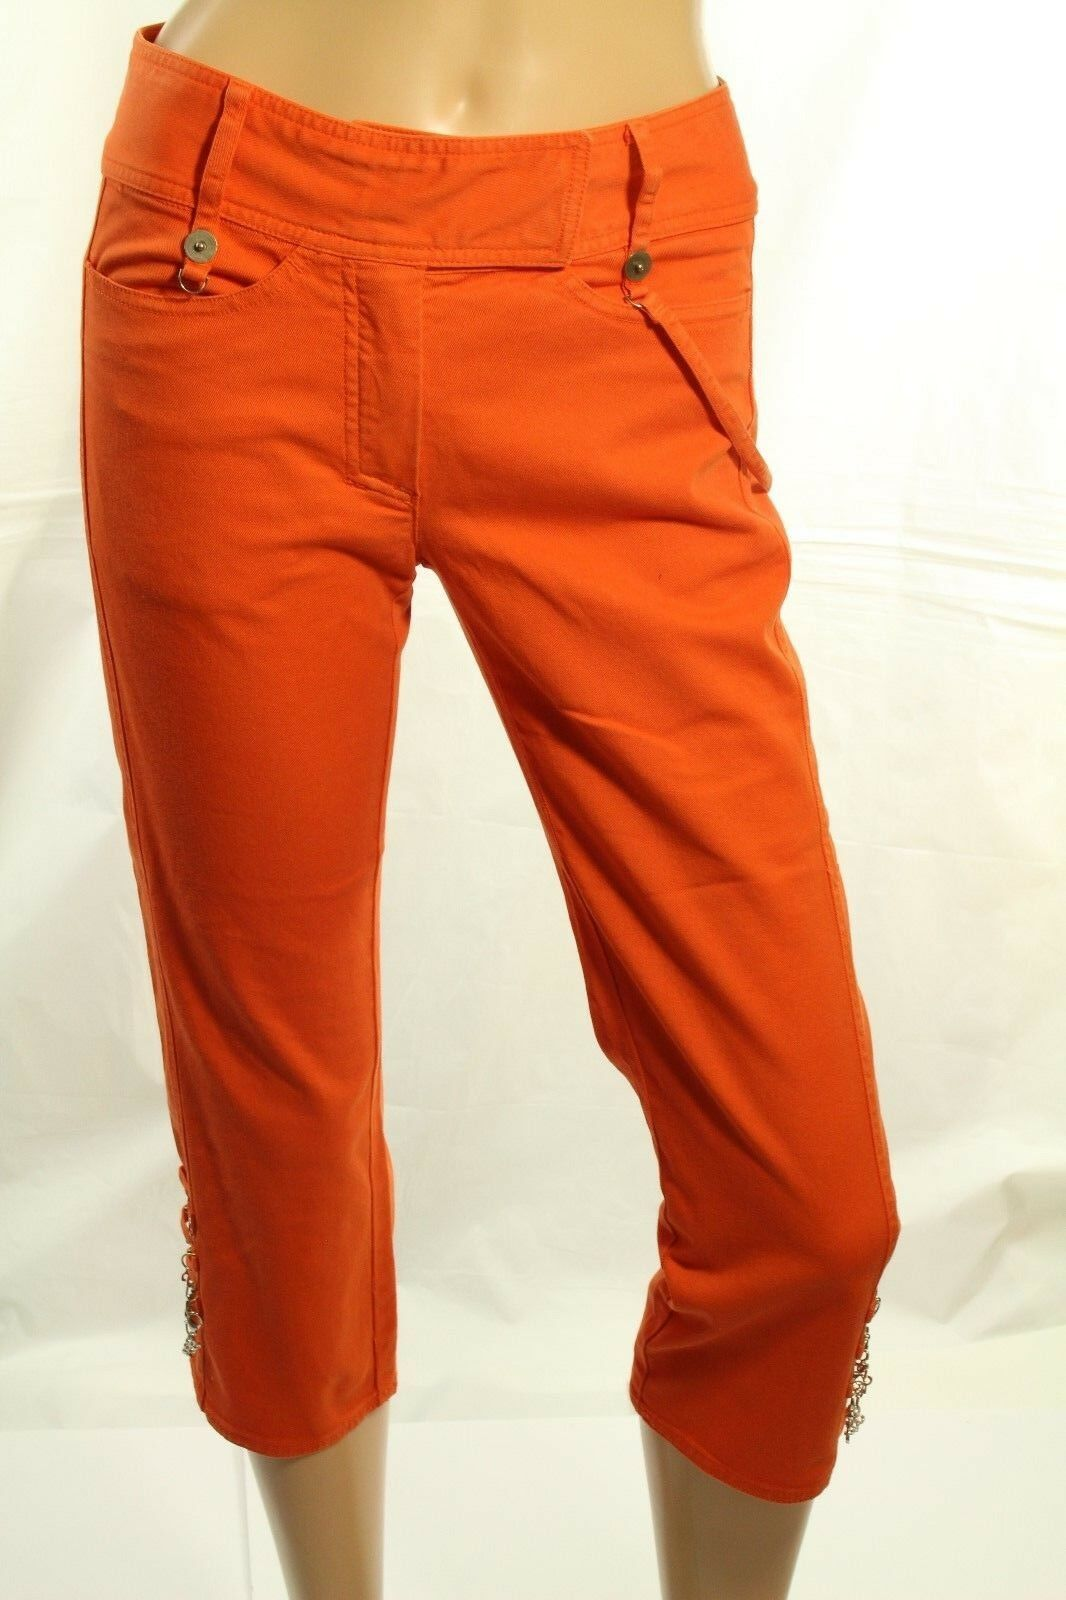 Roberta Scarpa Damen Capri Denim-Hose Orange Jeans Stretch